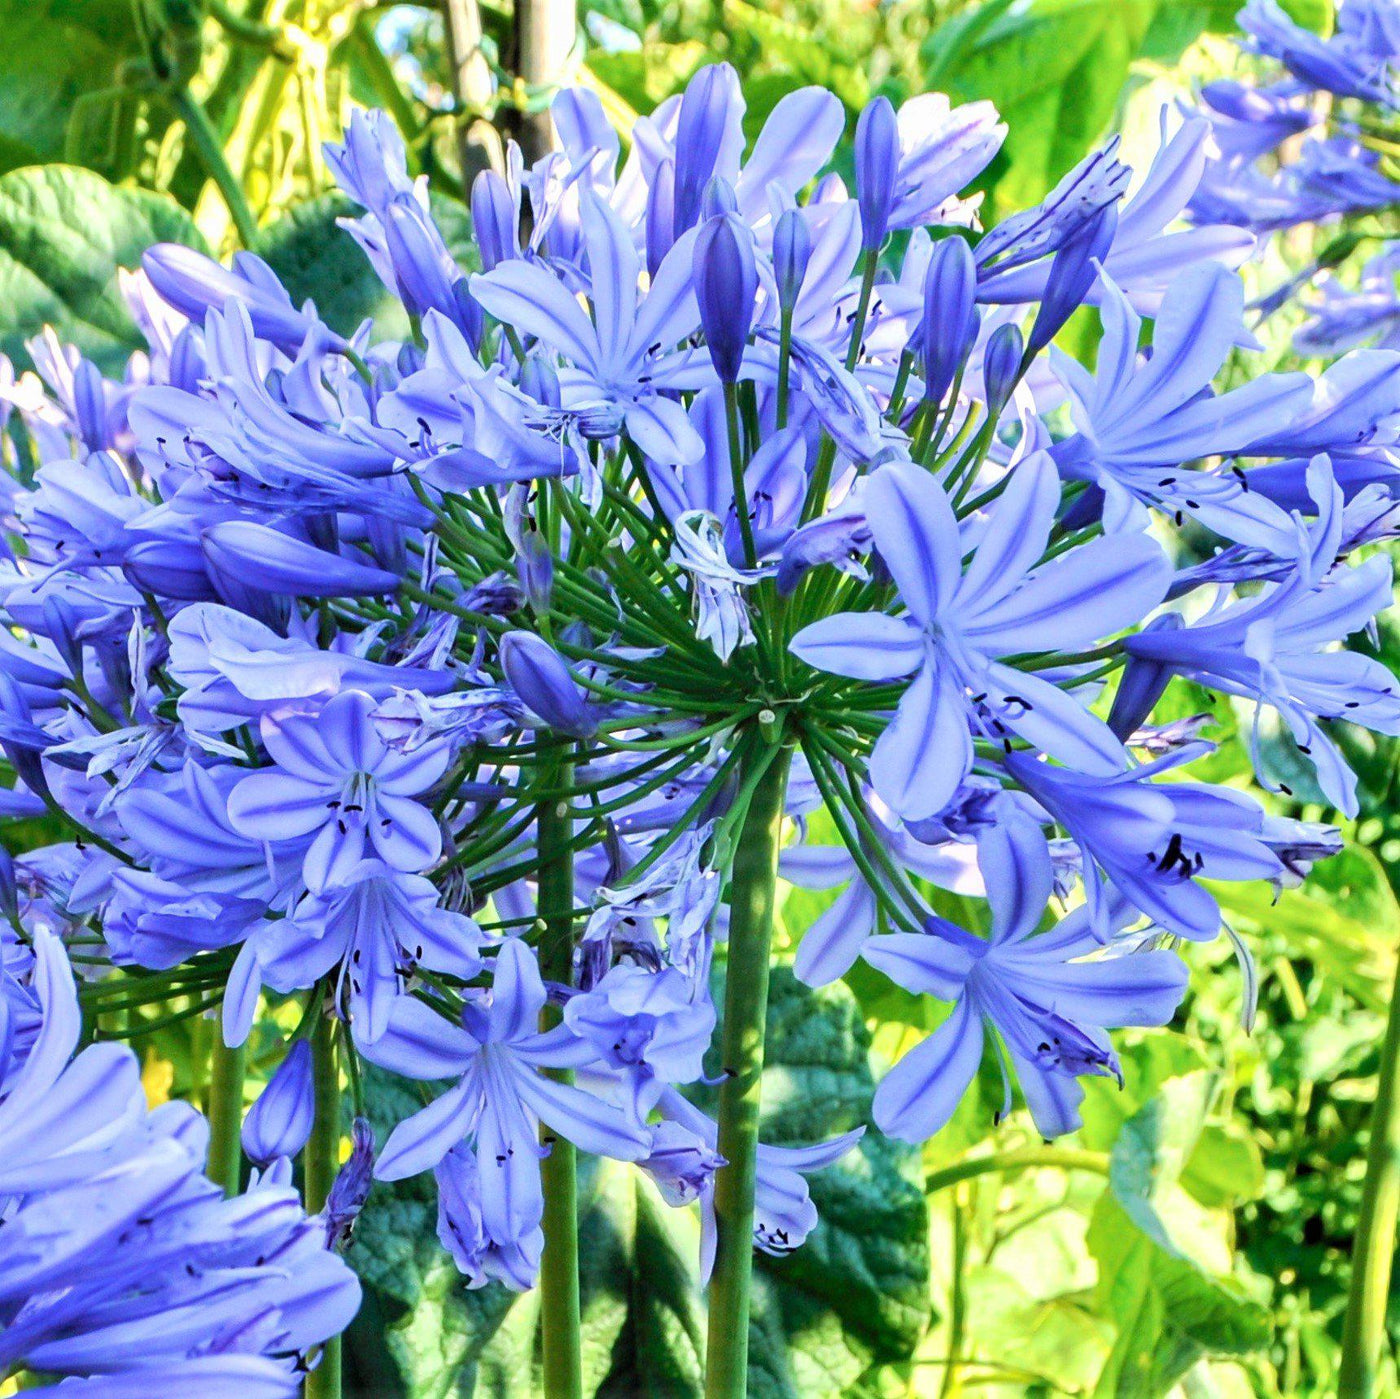 Agapanthus delft blue blue lily of the nile bulb easy to grow bulbs agapanthus delft blue izmirmasajfo